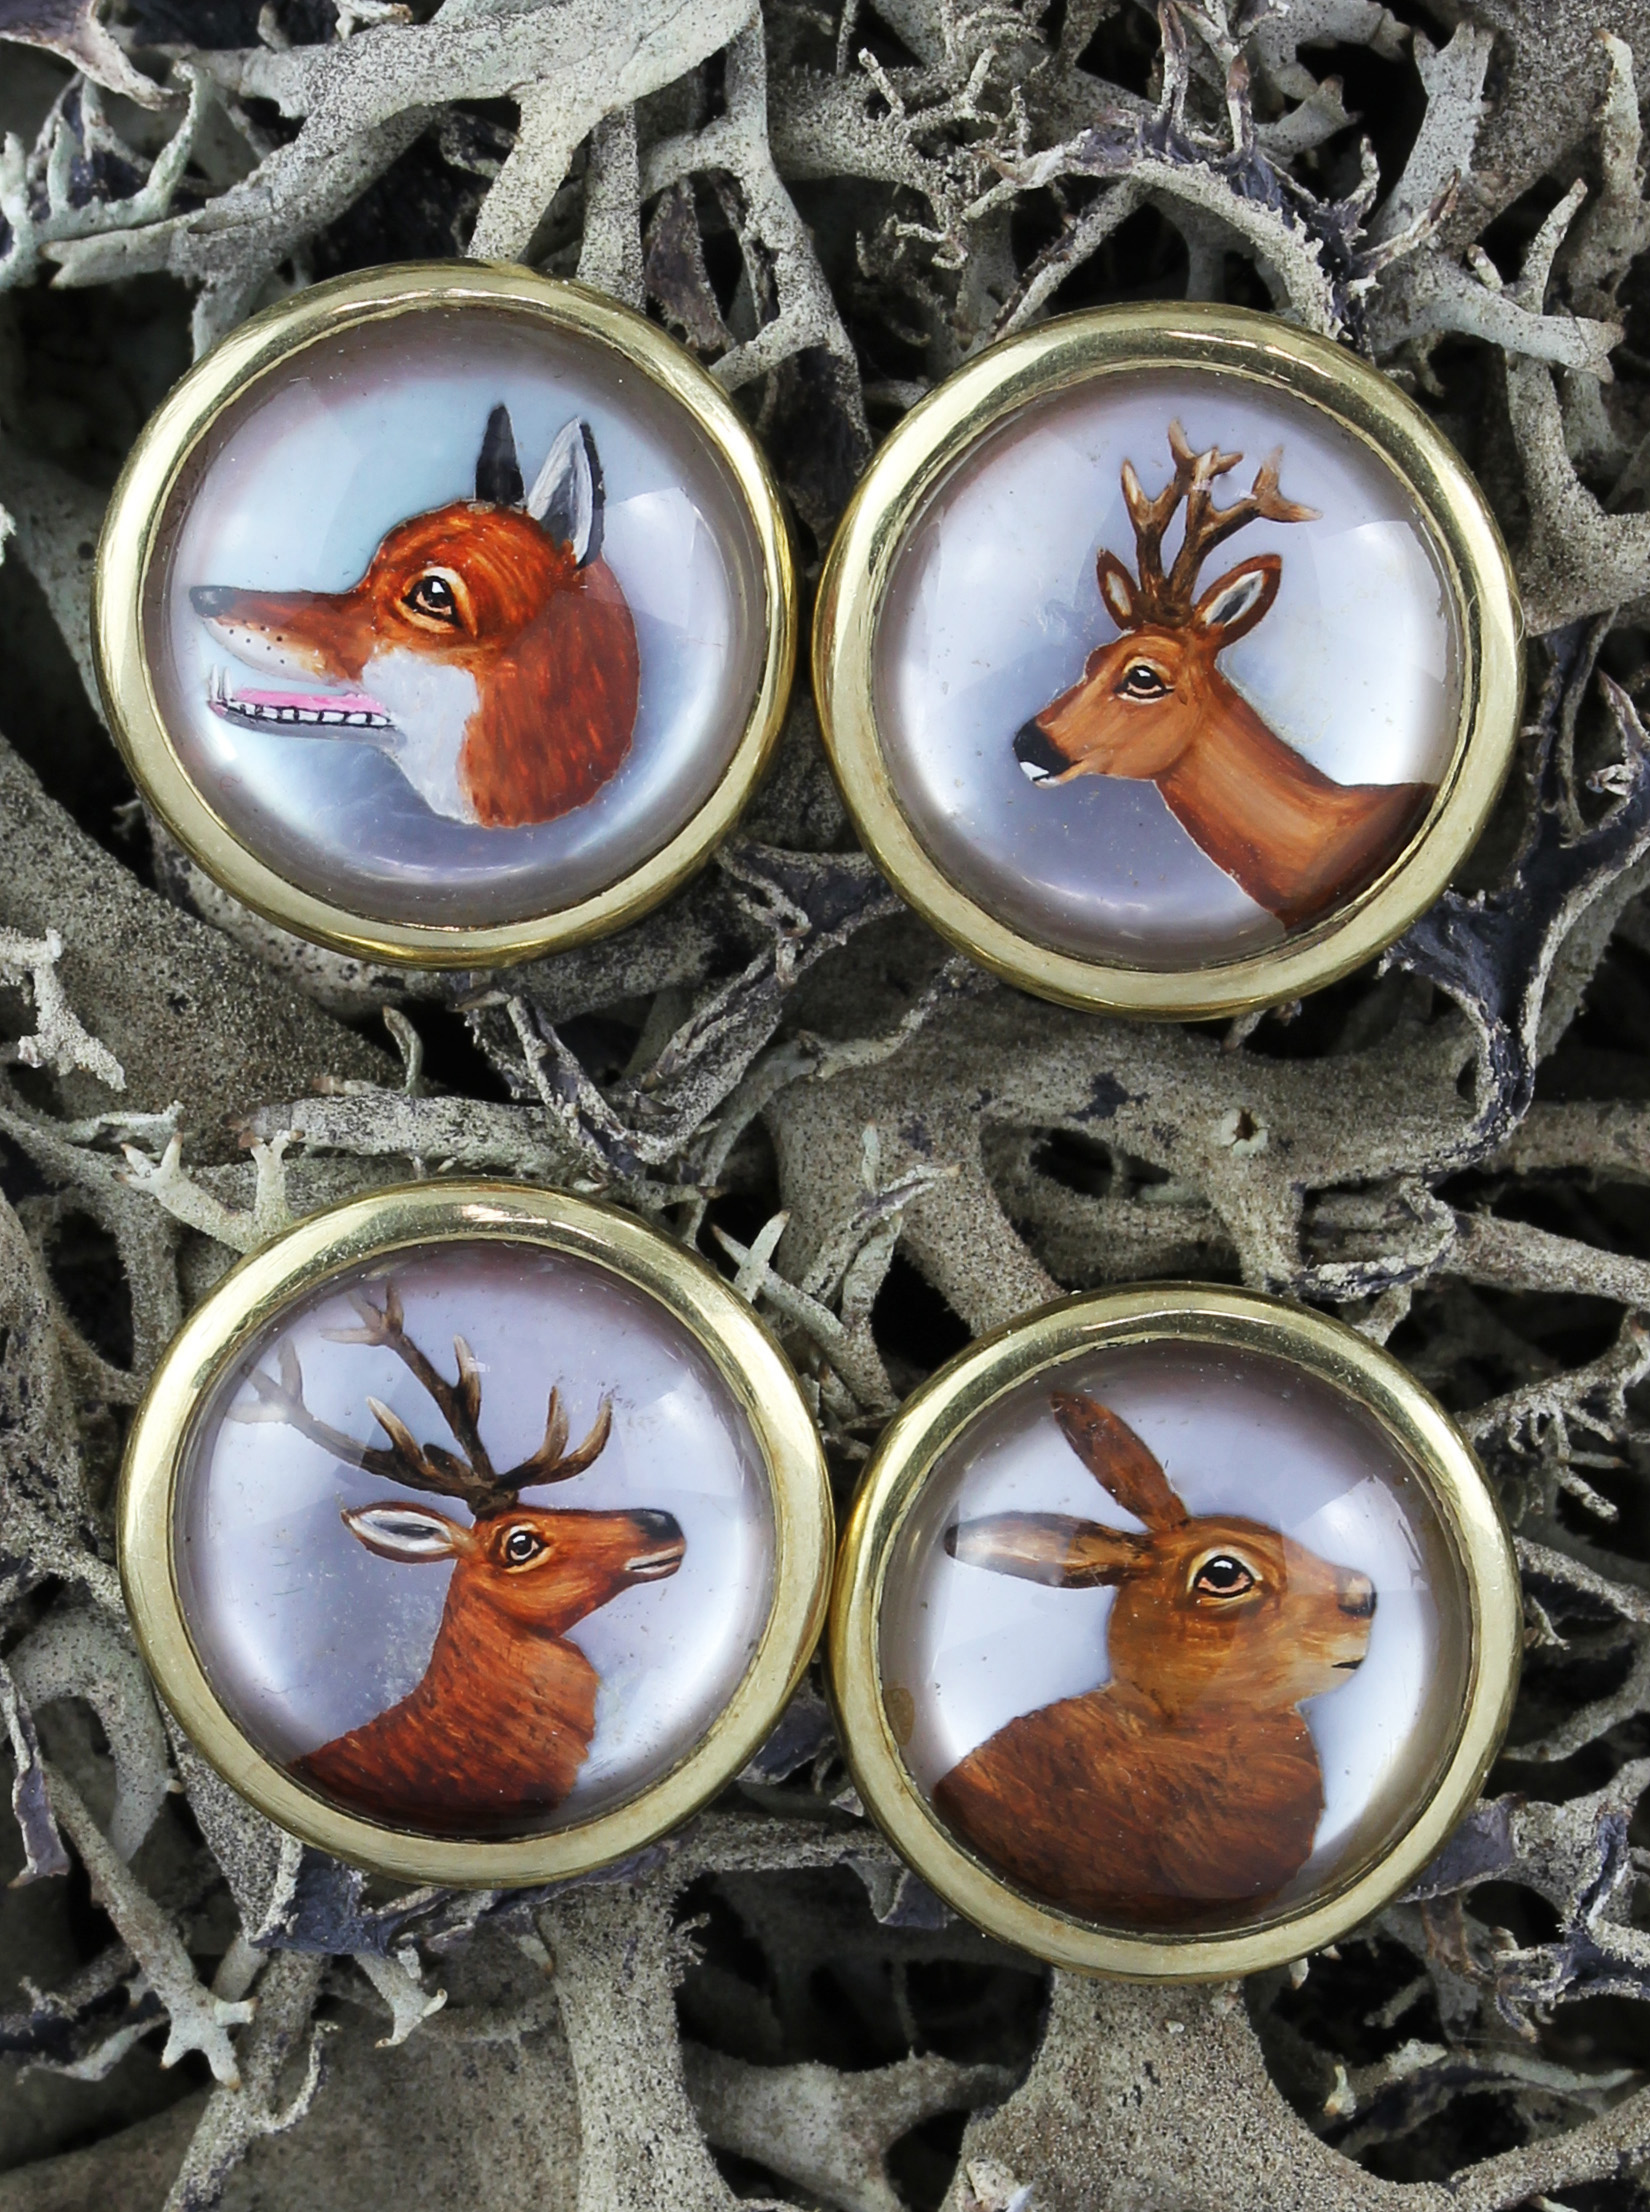 Extremely rare pair of hunting cufflinks in gold